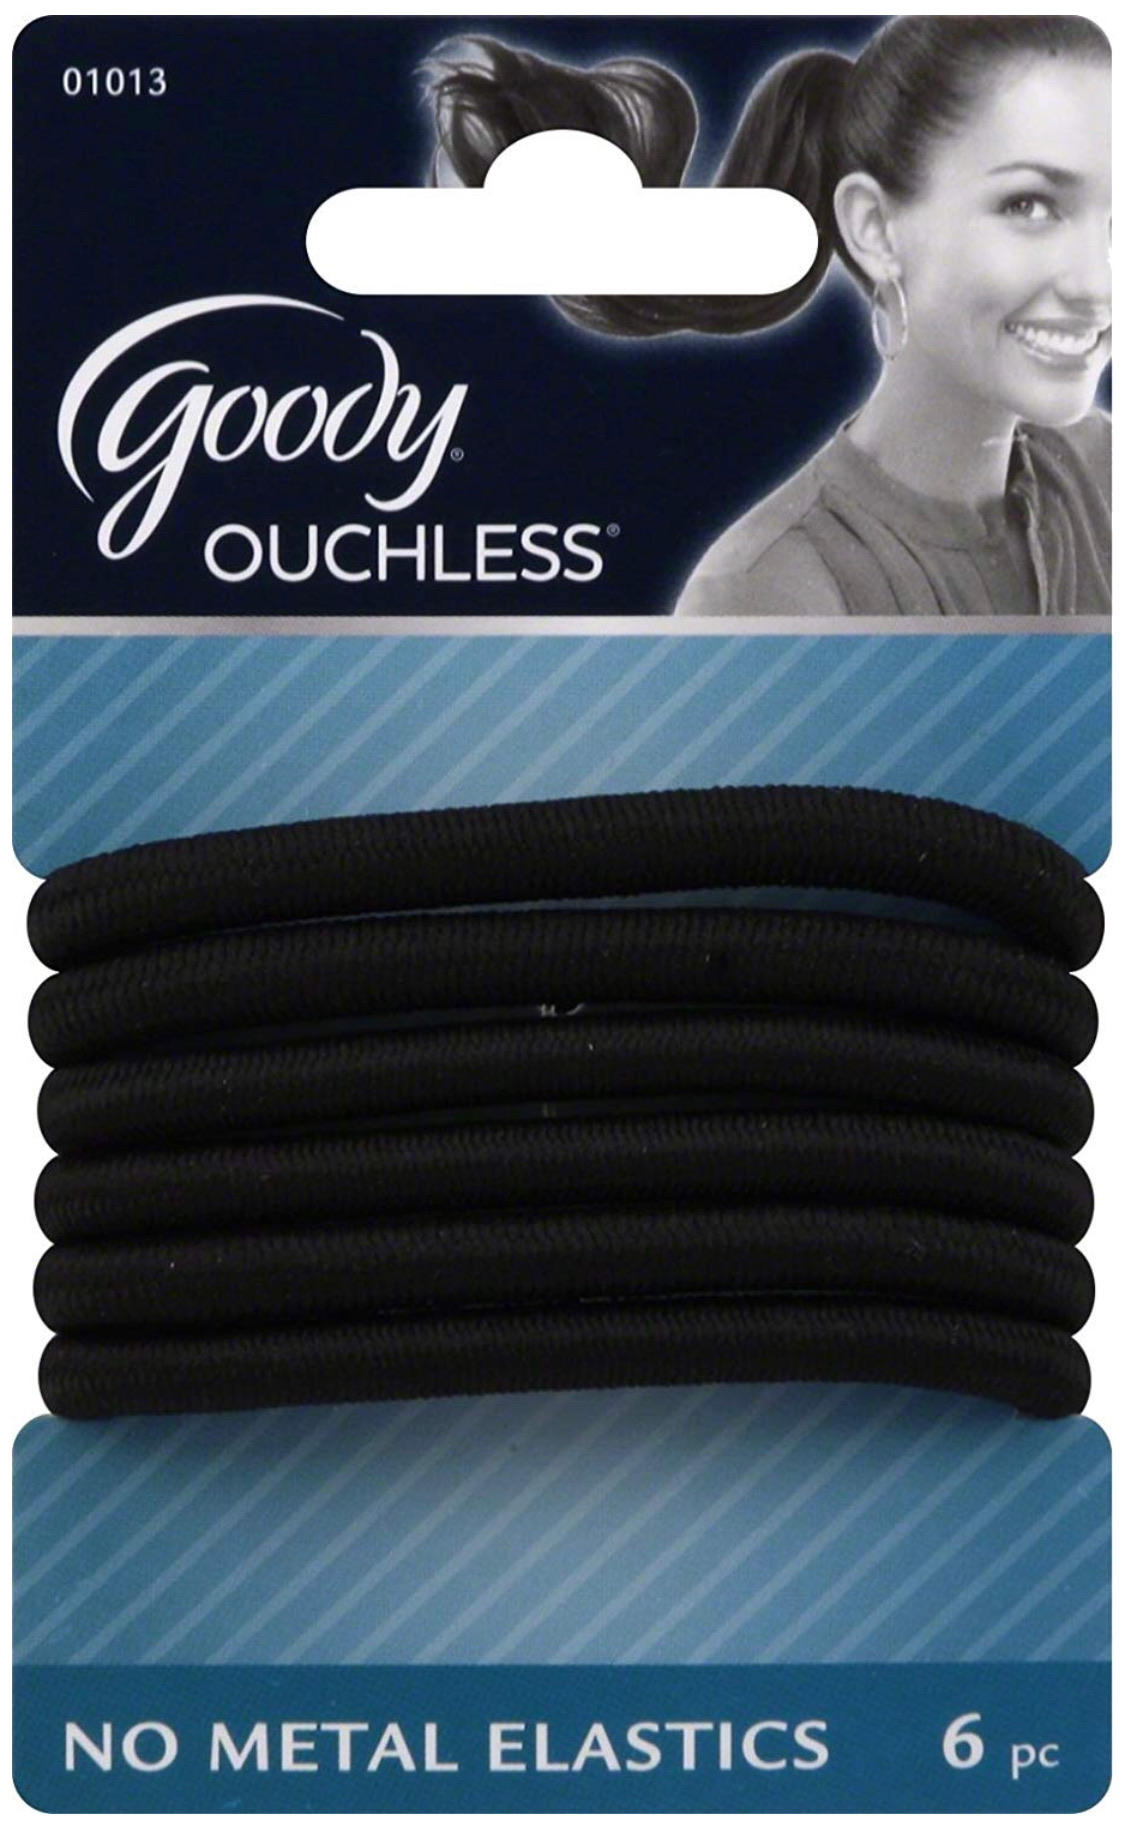 Goody Ouchless Extra Thick Black Elastics